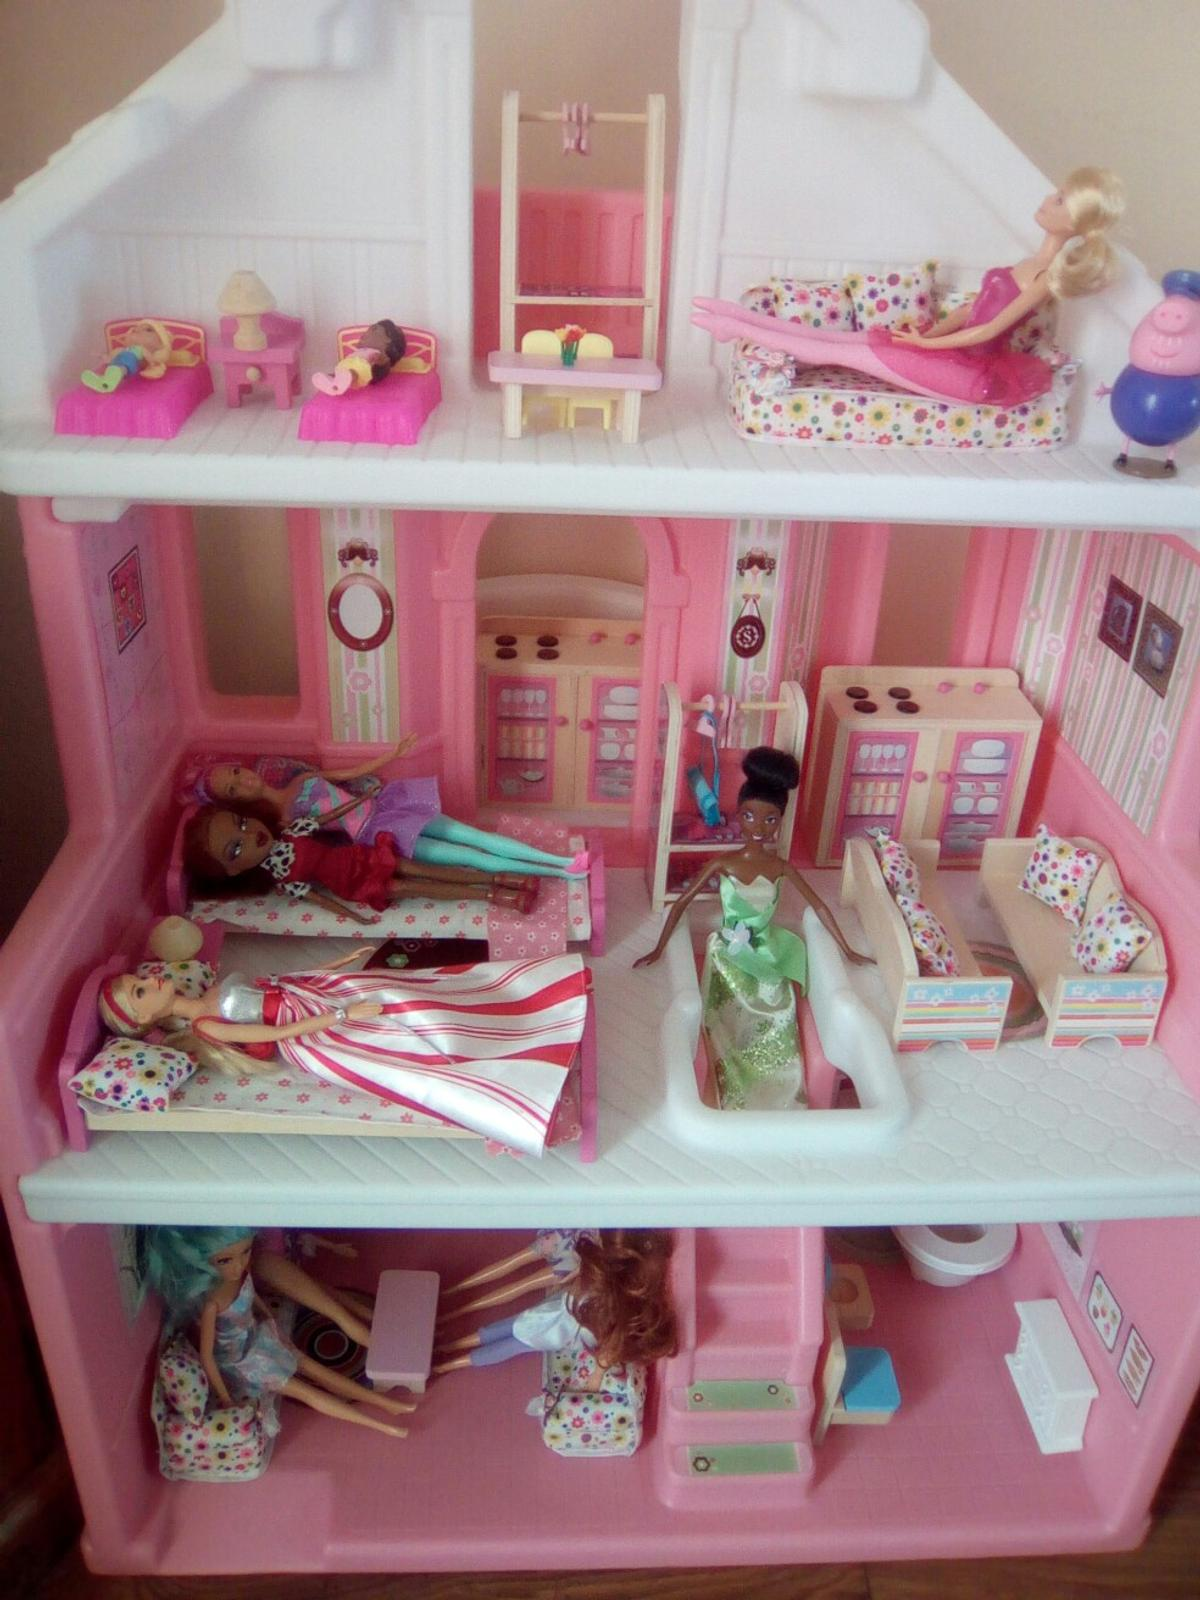 New Doll House Furniture In B67 Sandwell Fur 9 00 Kaufen Shpock